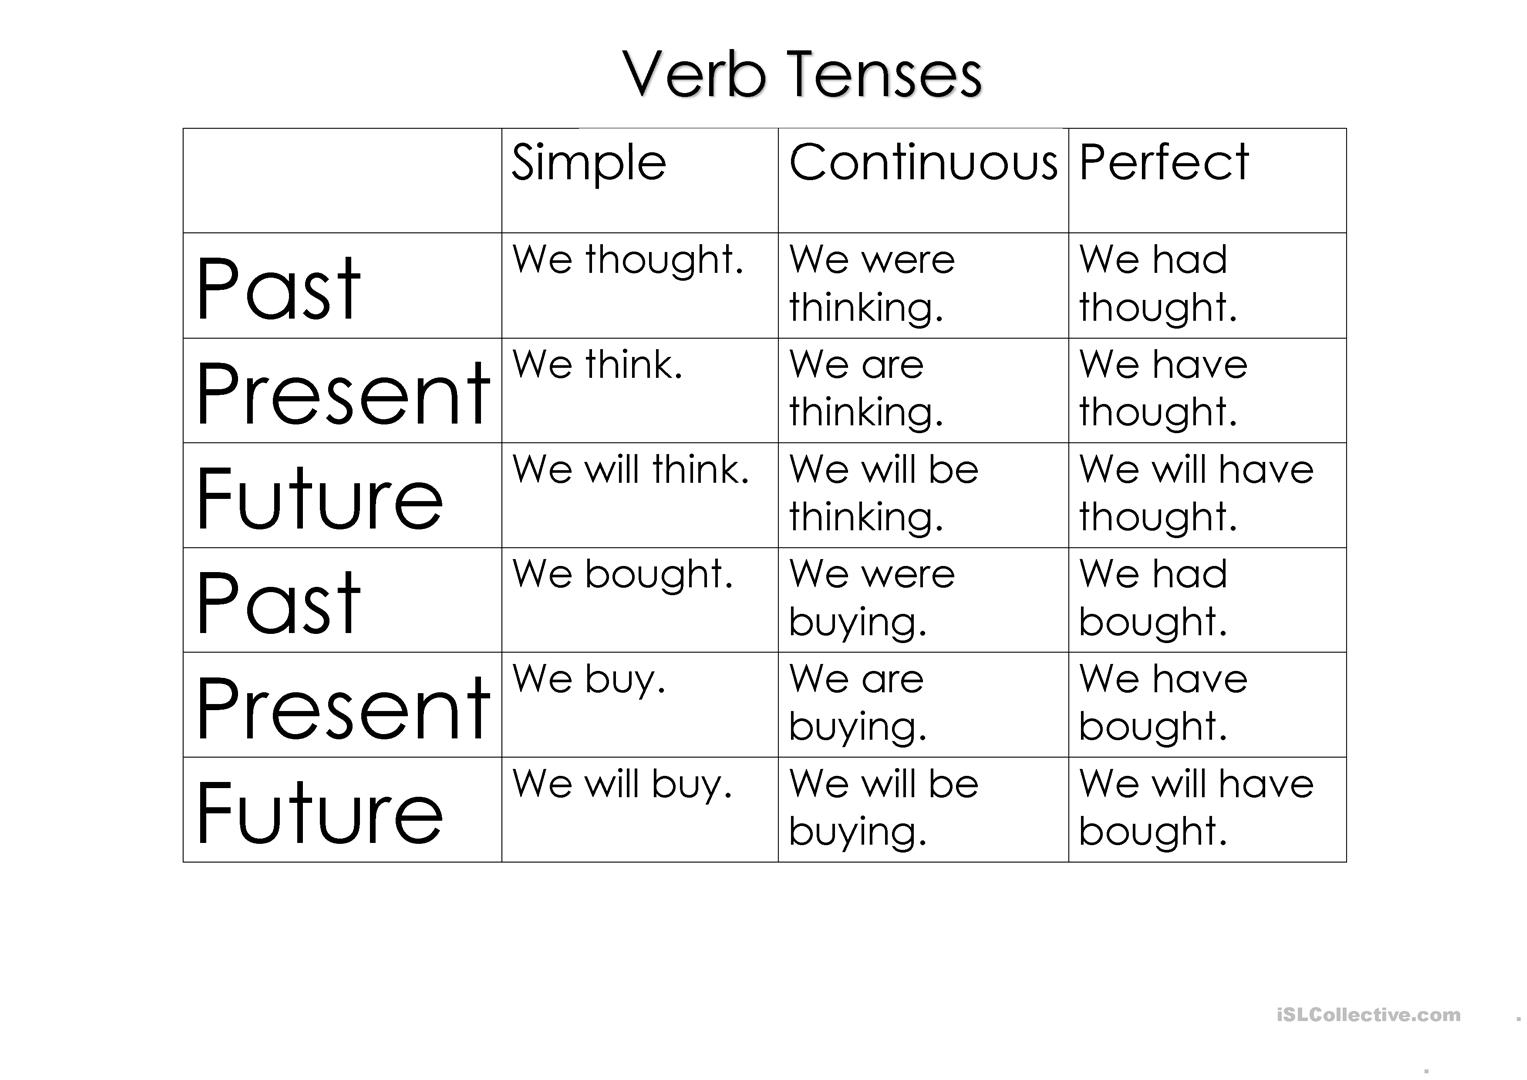 Verbs Tenses And Sentence Structure Worksheet - Free Esl Printable | Free Printable Worksheets On Verb Tenses